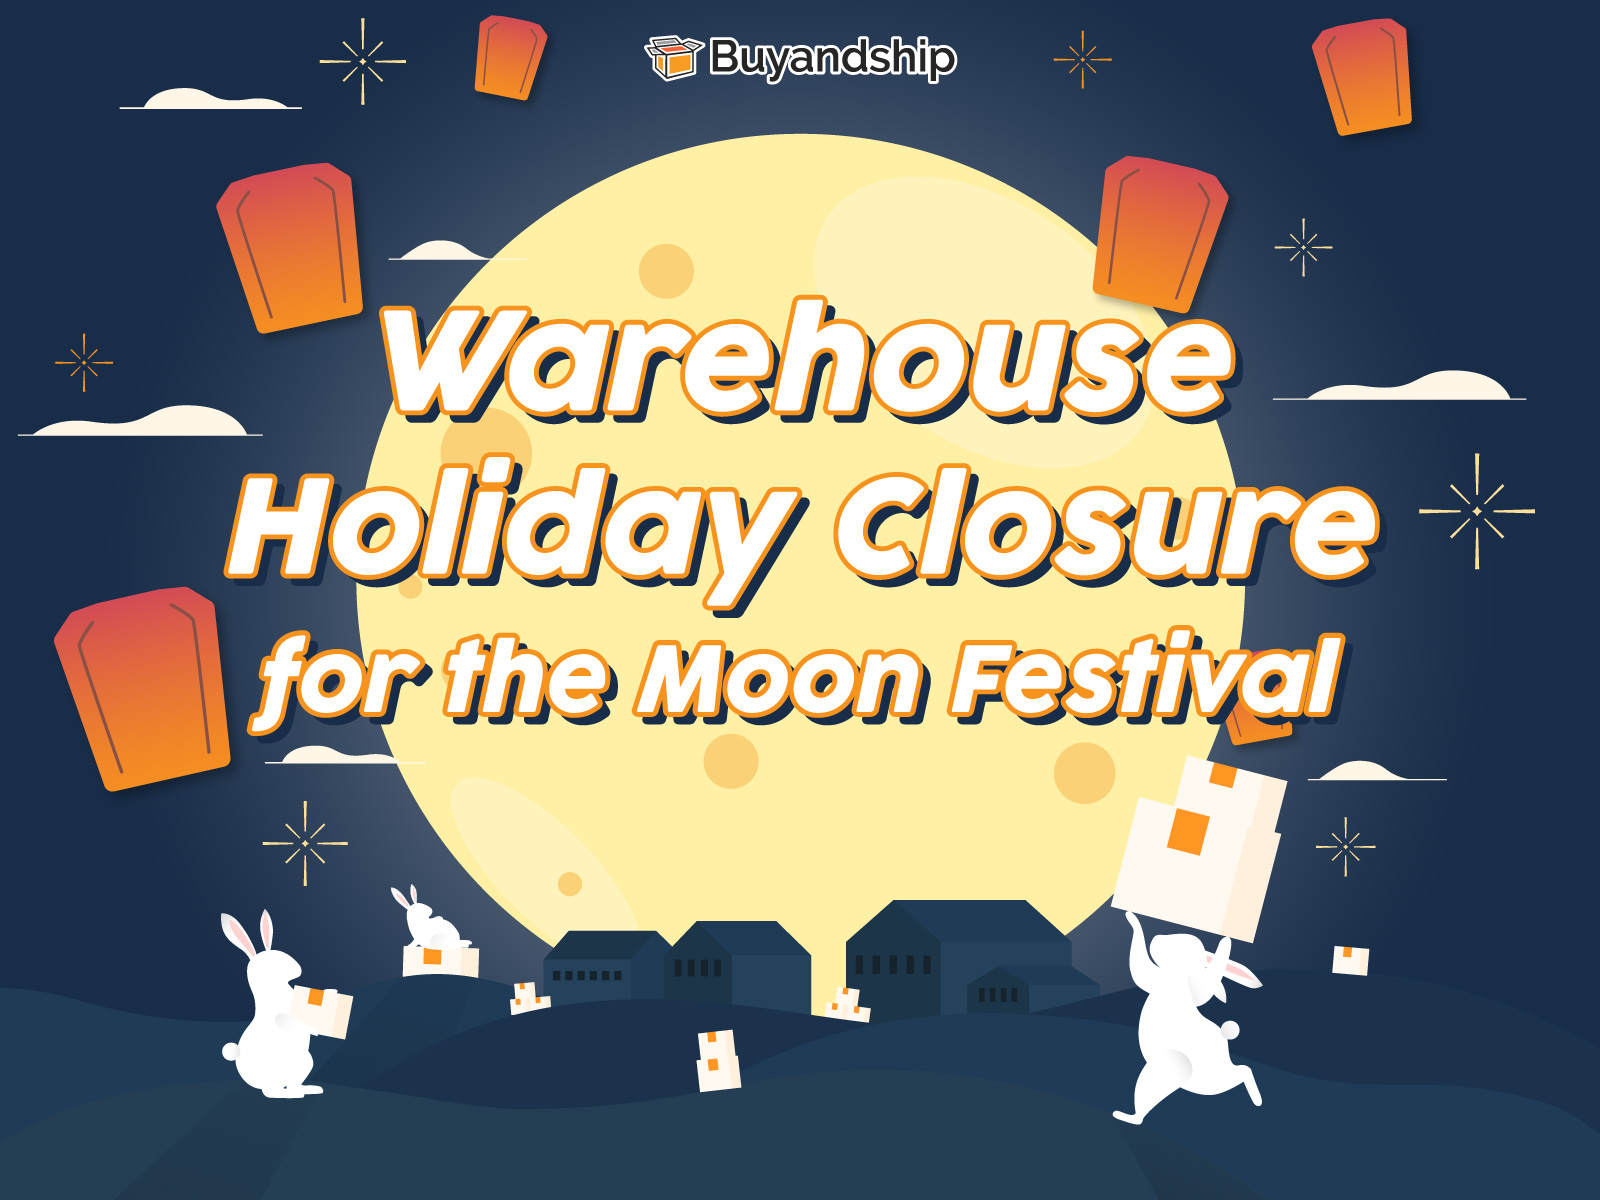 Warehouse Holiday Closure for the Mid-Autumn Festival